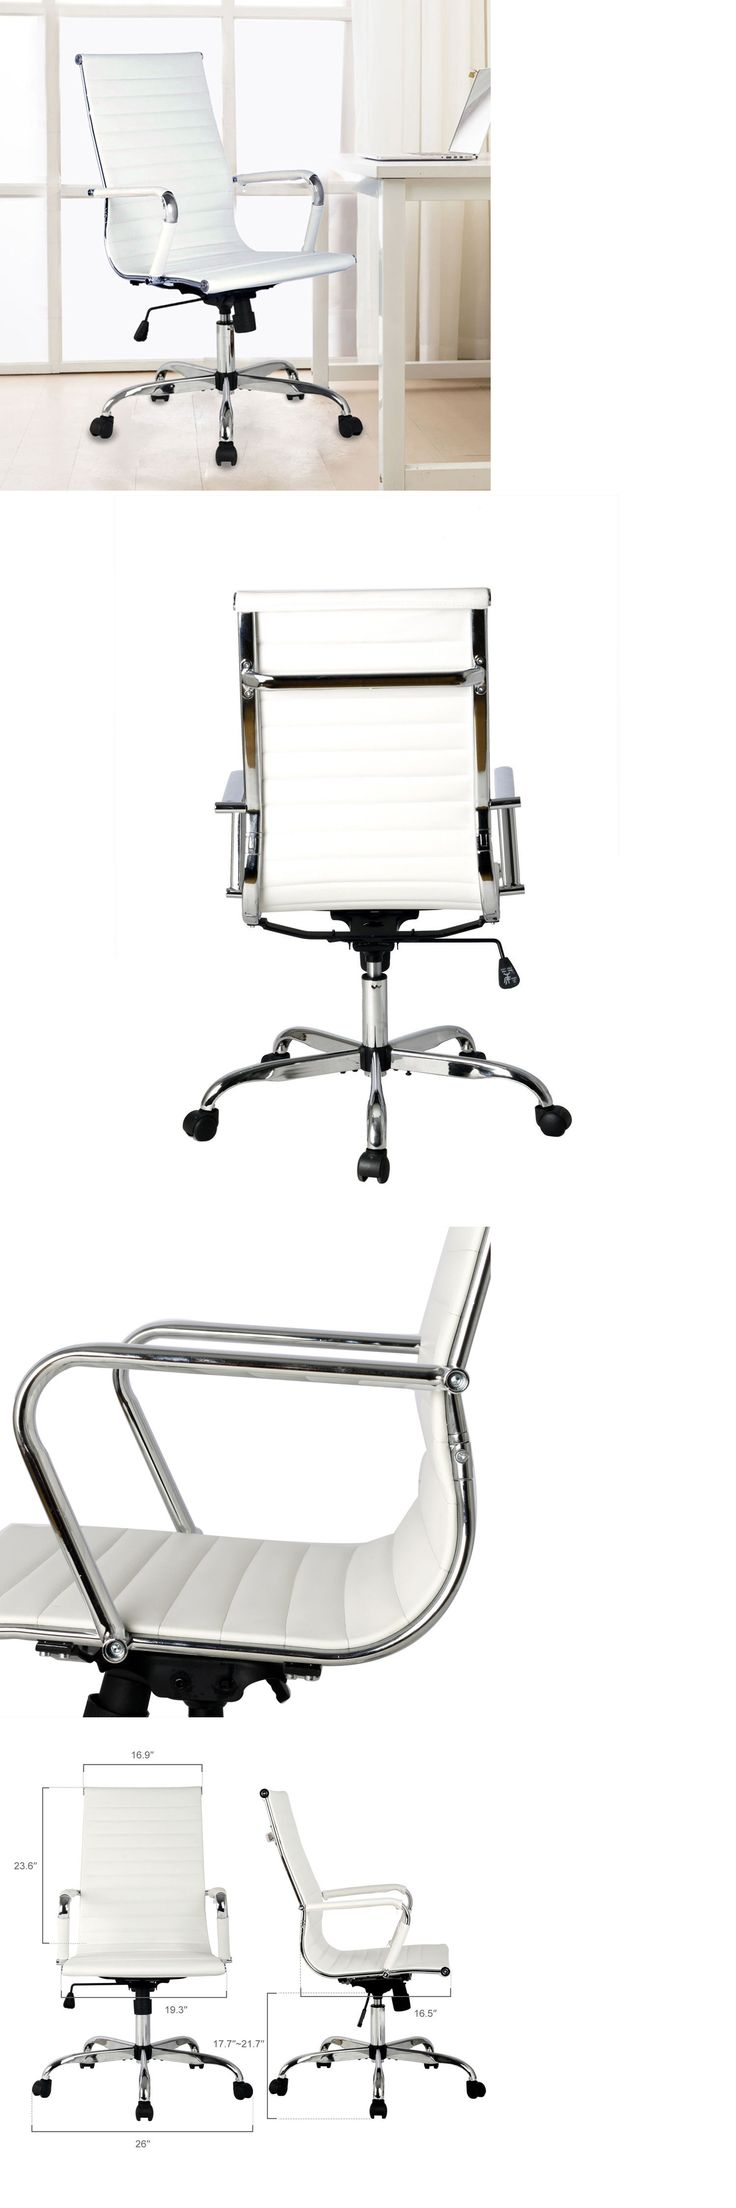 Office Furniture: Ergonomic Office Chair Pu Leather High Back Executive Computer Desk Home White -> BUY IT NOW ONLY: $169.99 on eBay!